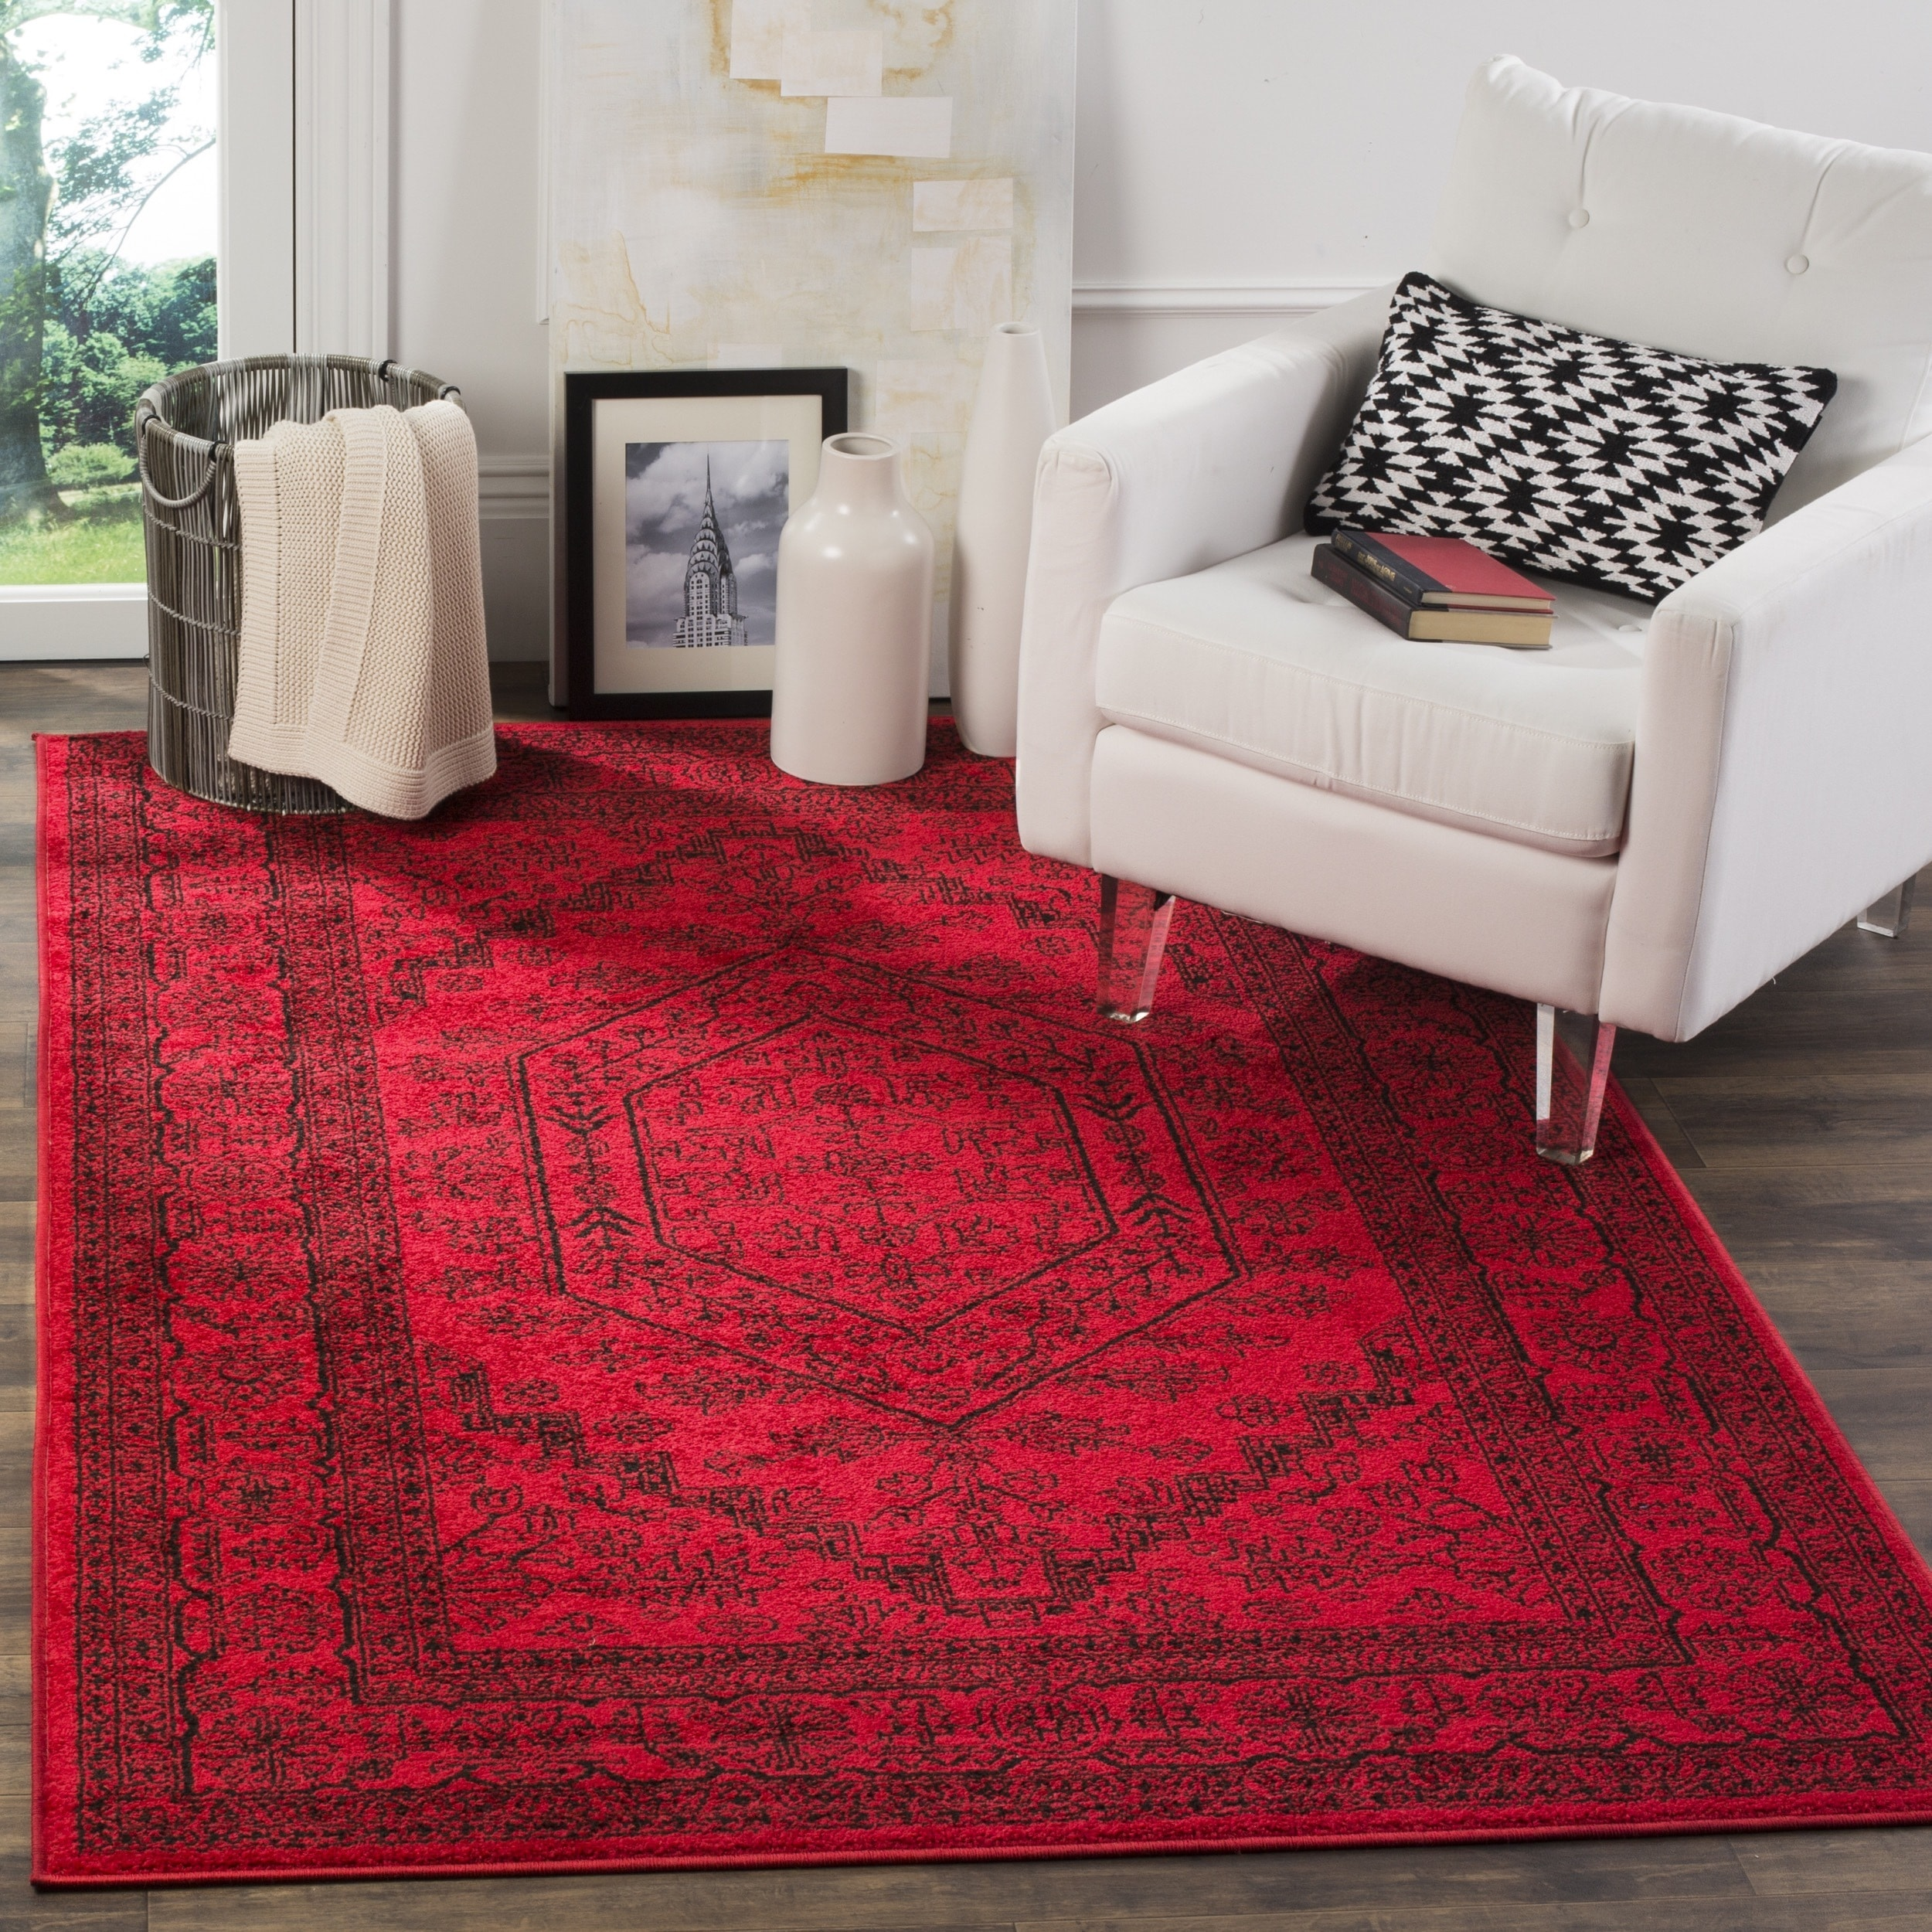 Shop Safavieh Adirondack Cheyenne Medallion Red/ Black Rug - 10\' x ...